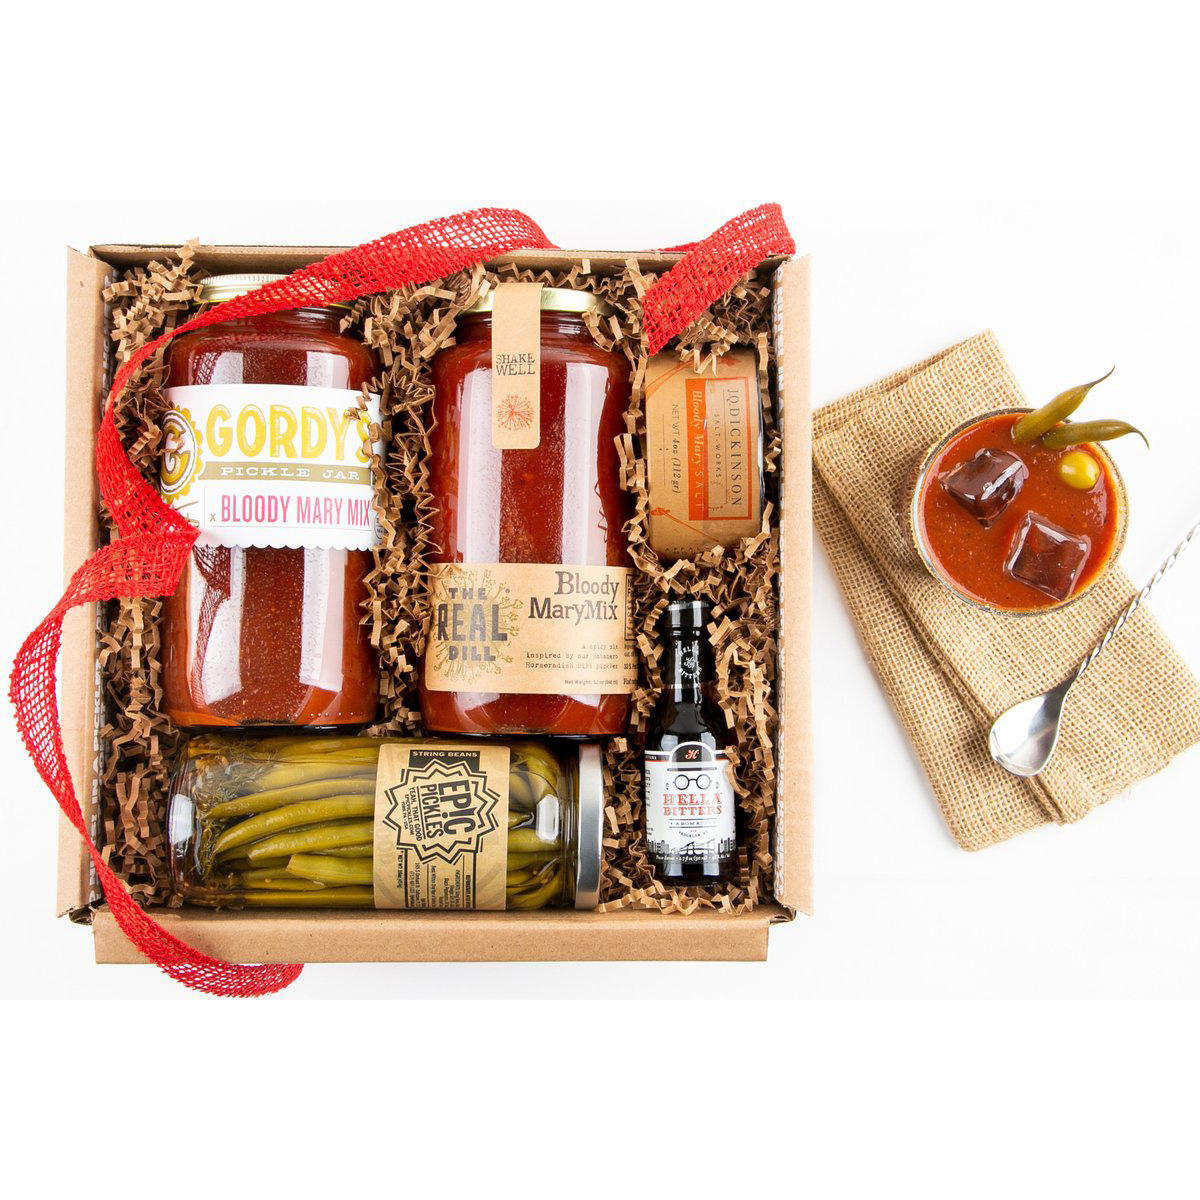 Bloody Mary Kit in a wooden box